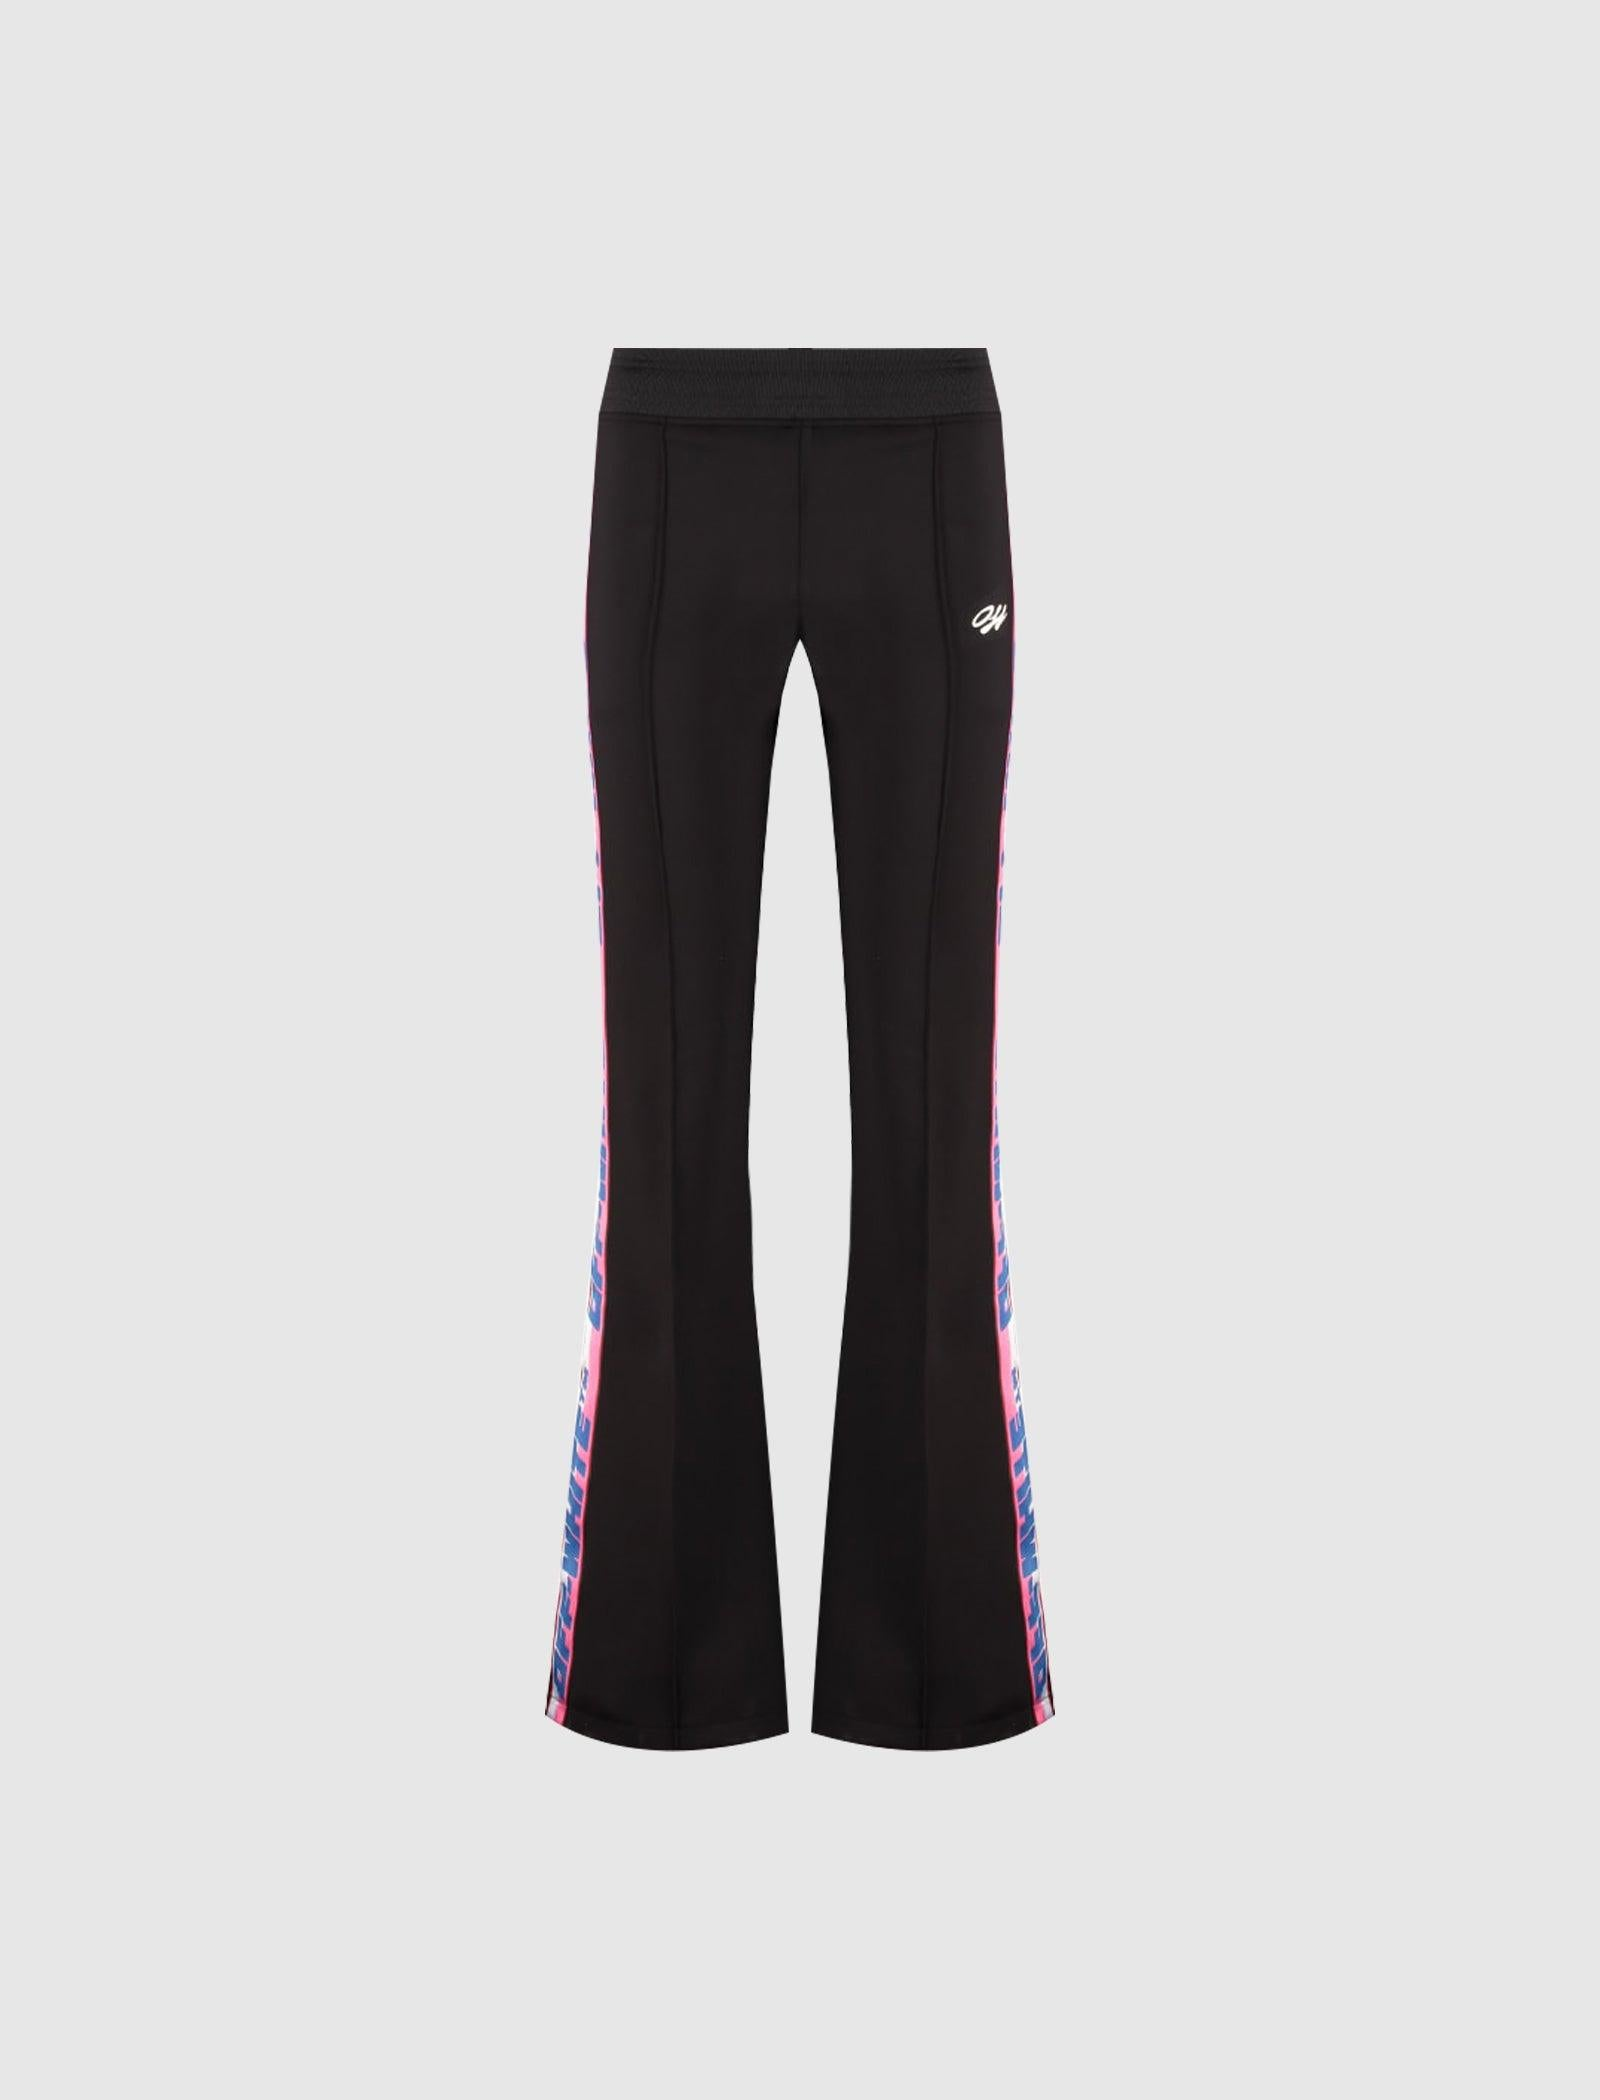 WOMENS ATHLEISURE TRACK PNT